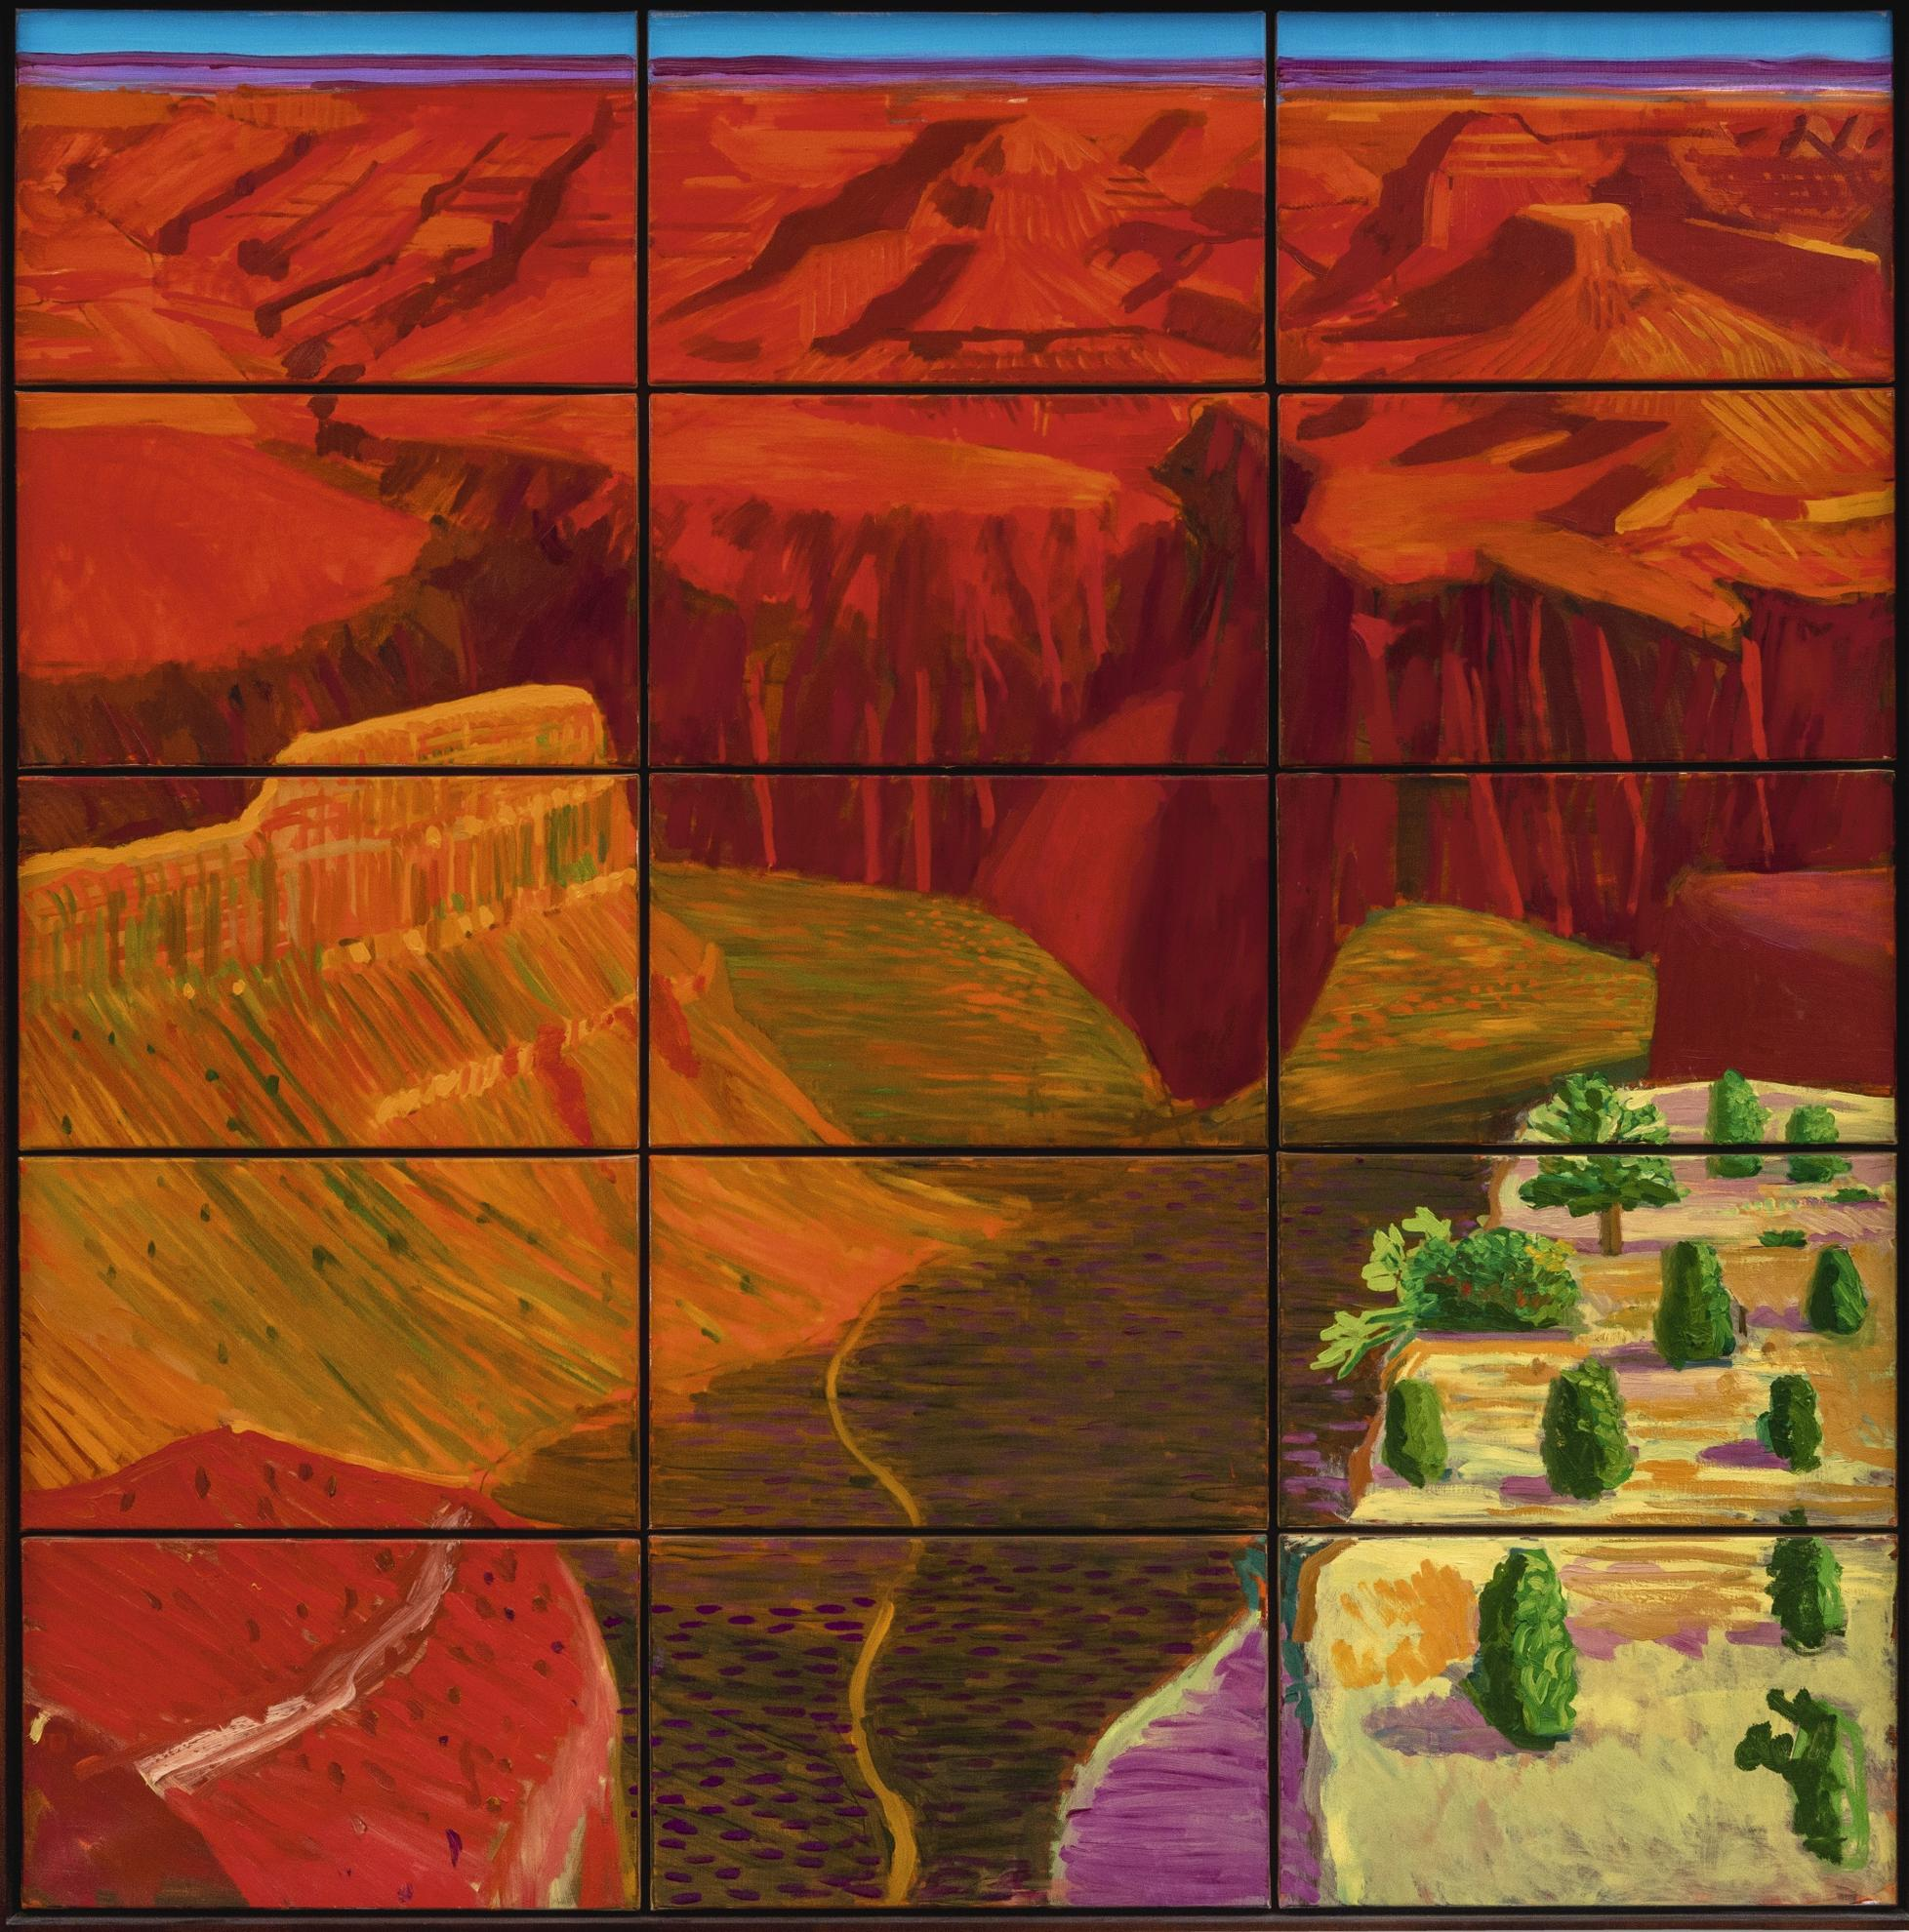 David Hockney-15 Canvas Study Of The Grand Canyon-1998